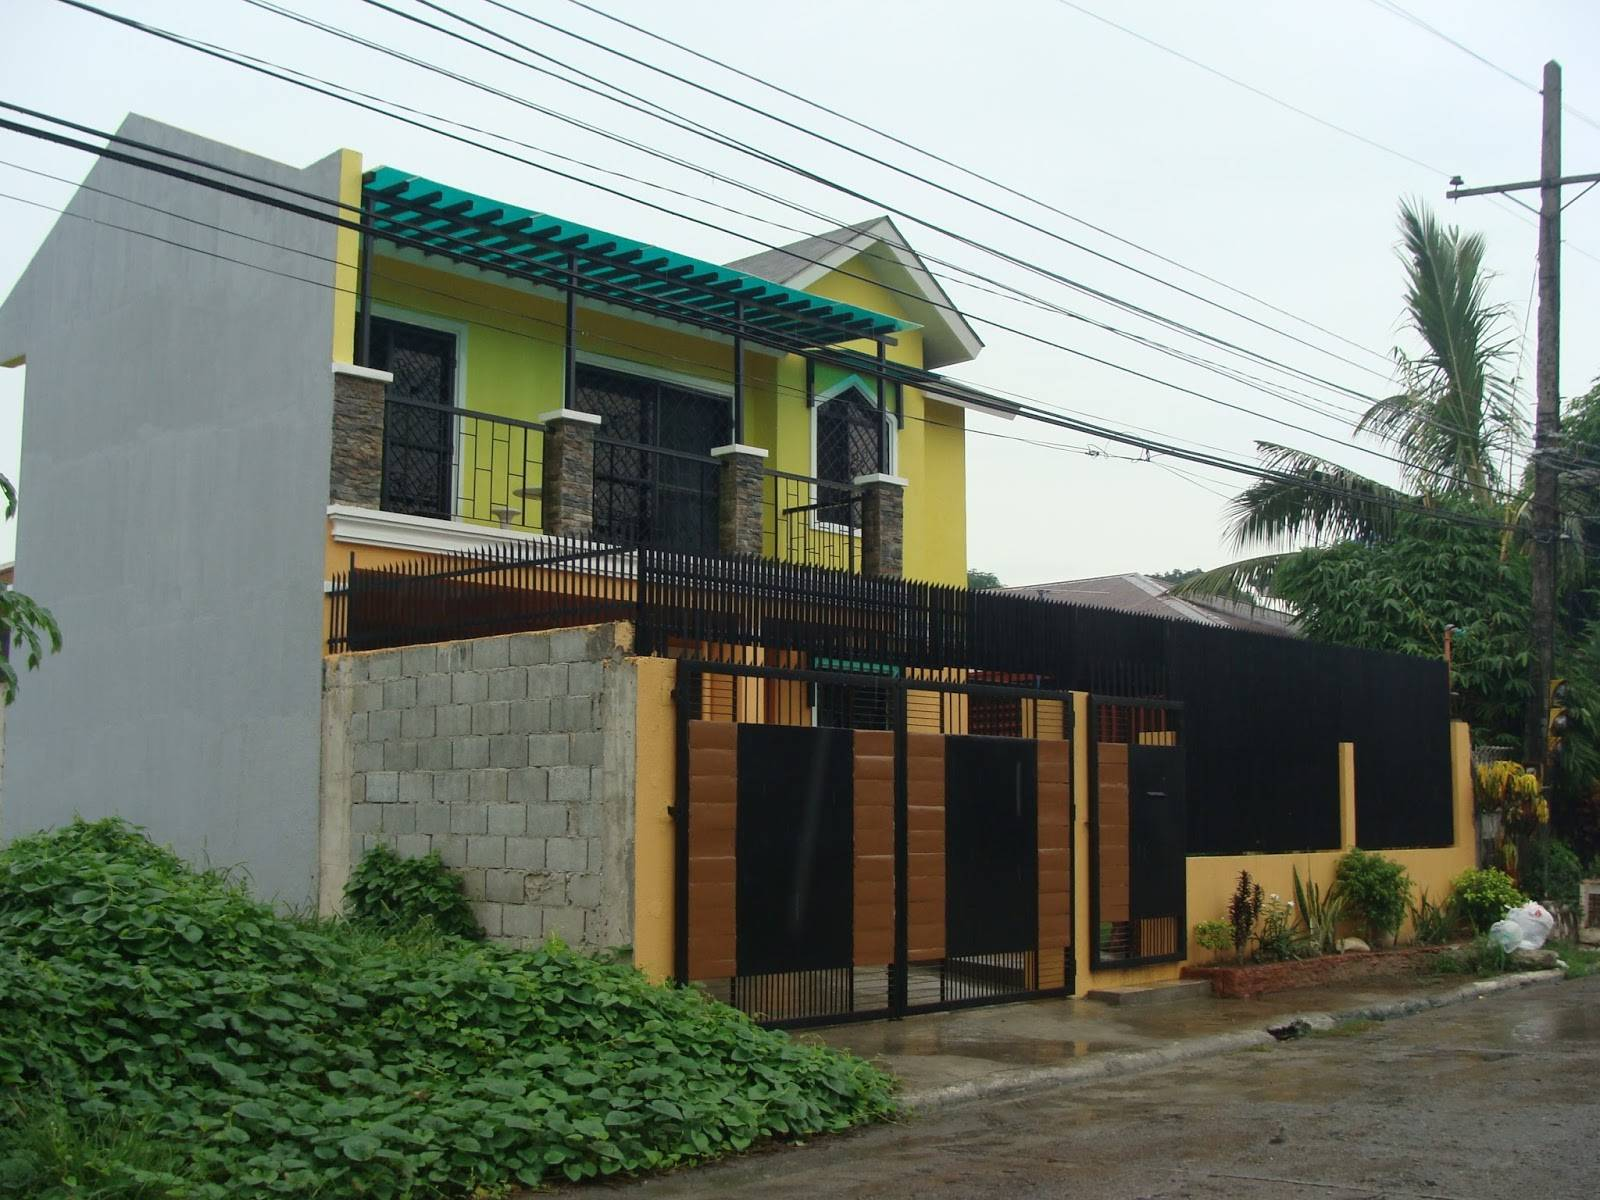 House design simple - Top Story House Design Ideas With Simple House Designs 2